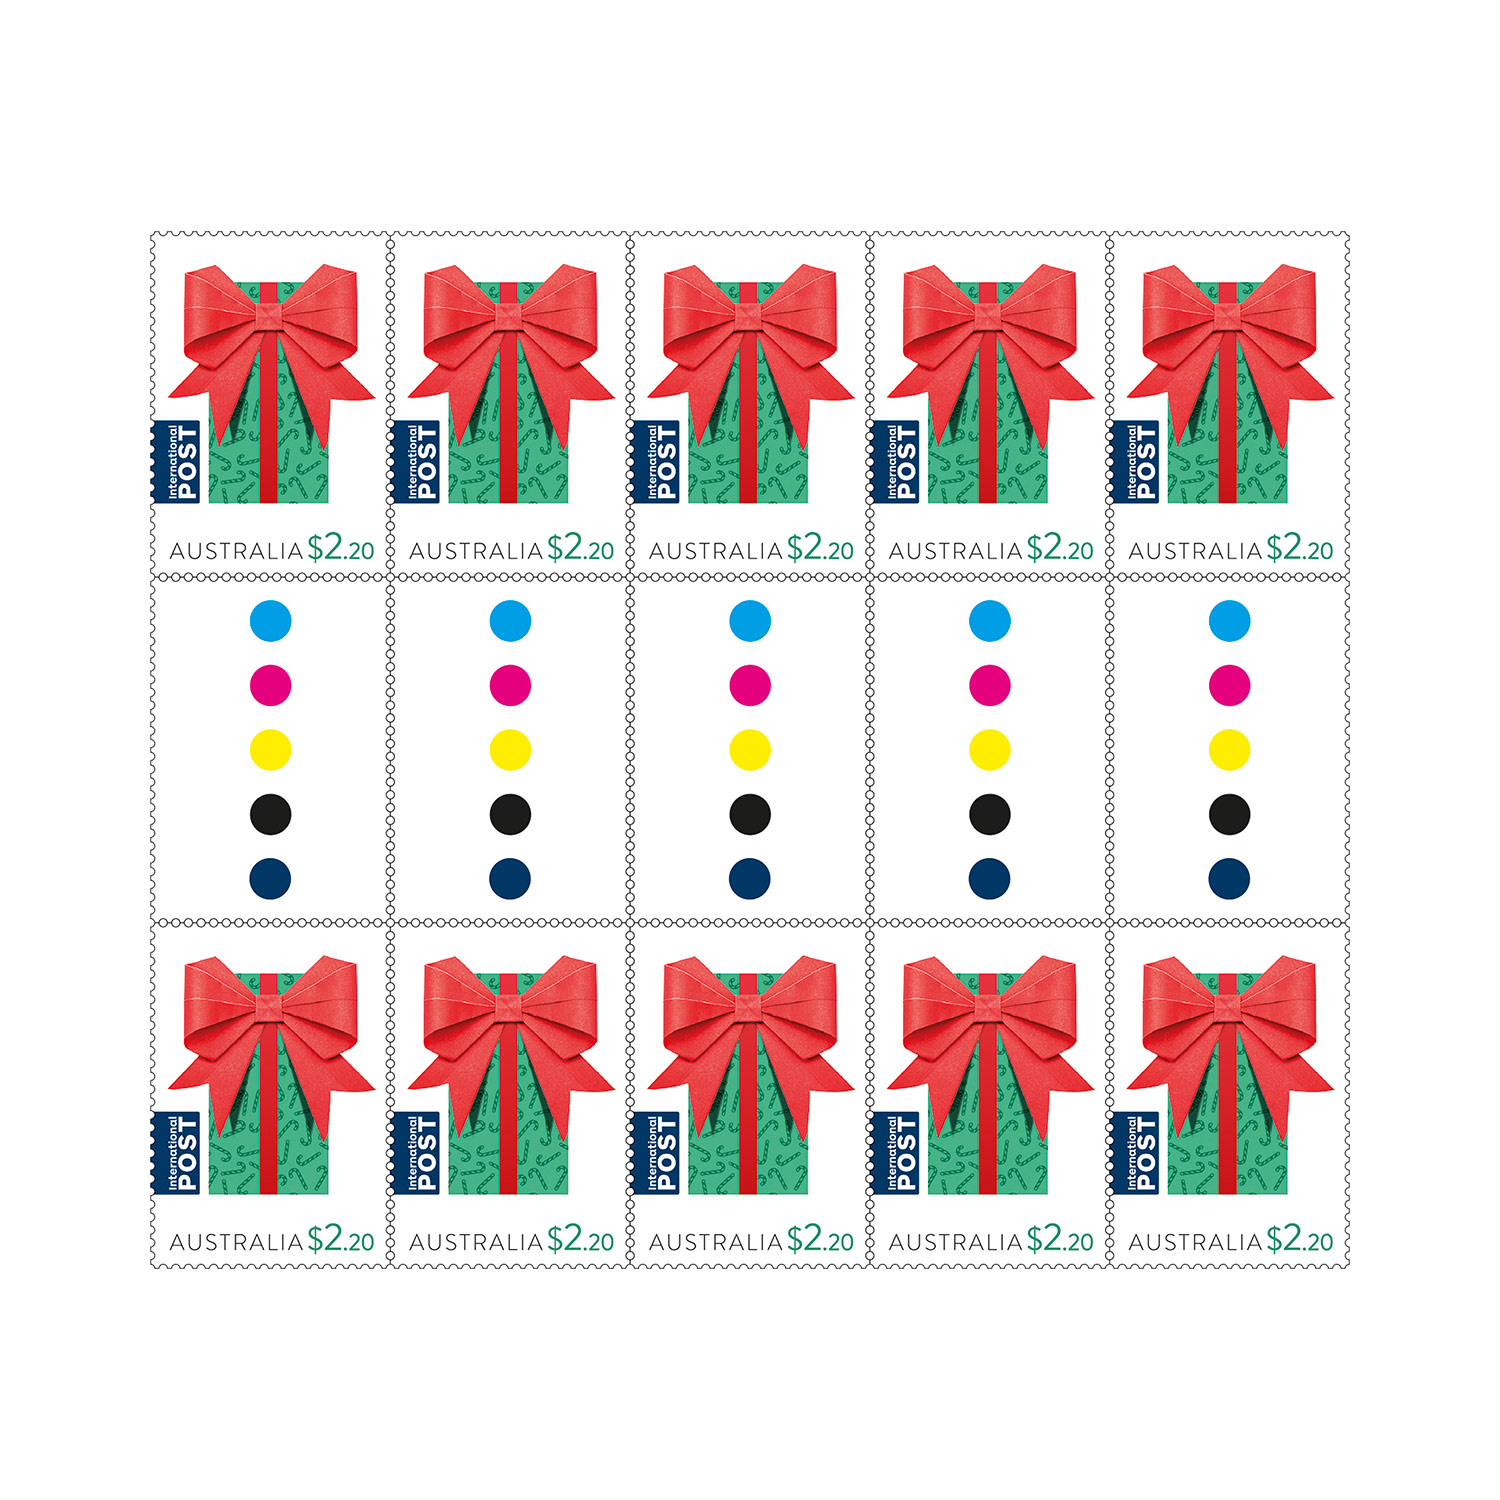 Christmas Stamps 2019.Gutter Strip 10 X 2 20 Christmas 2019 Gift International Stamps